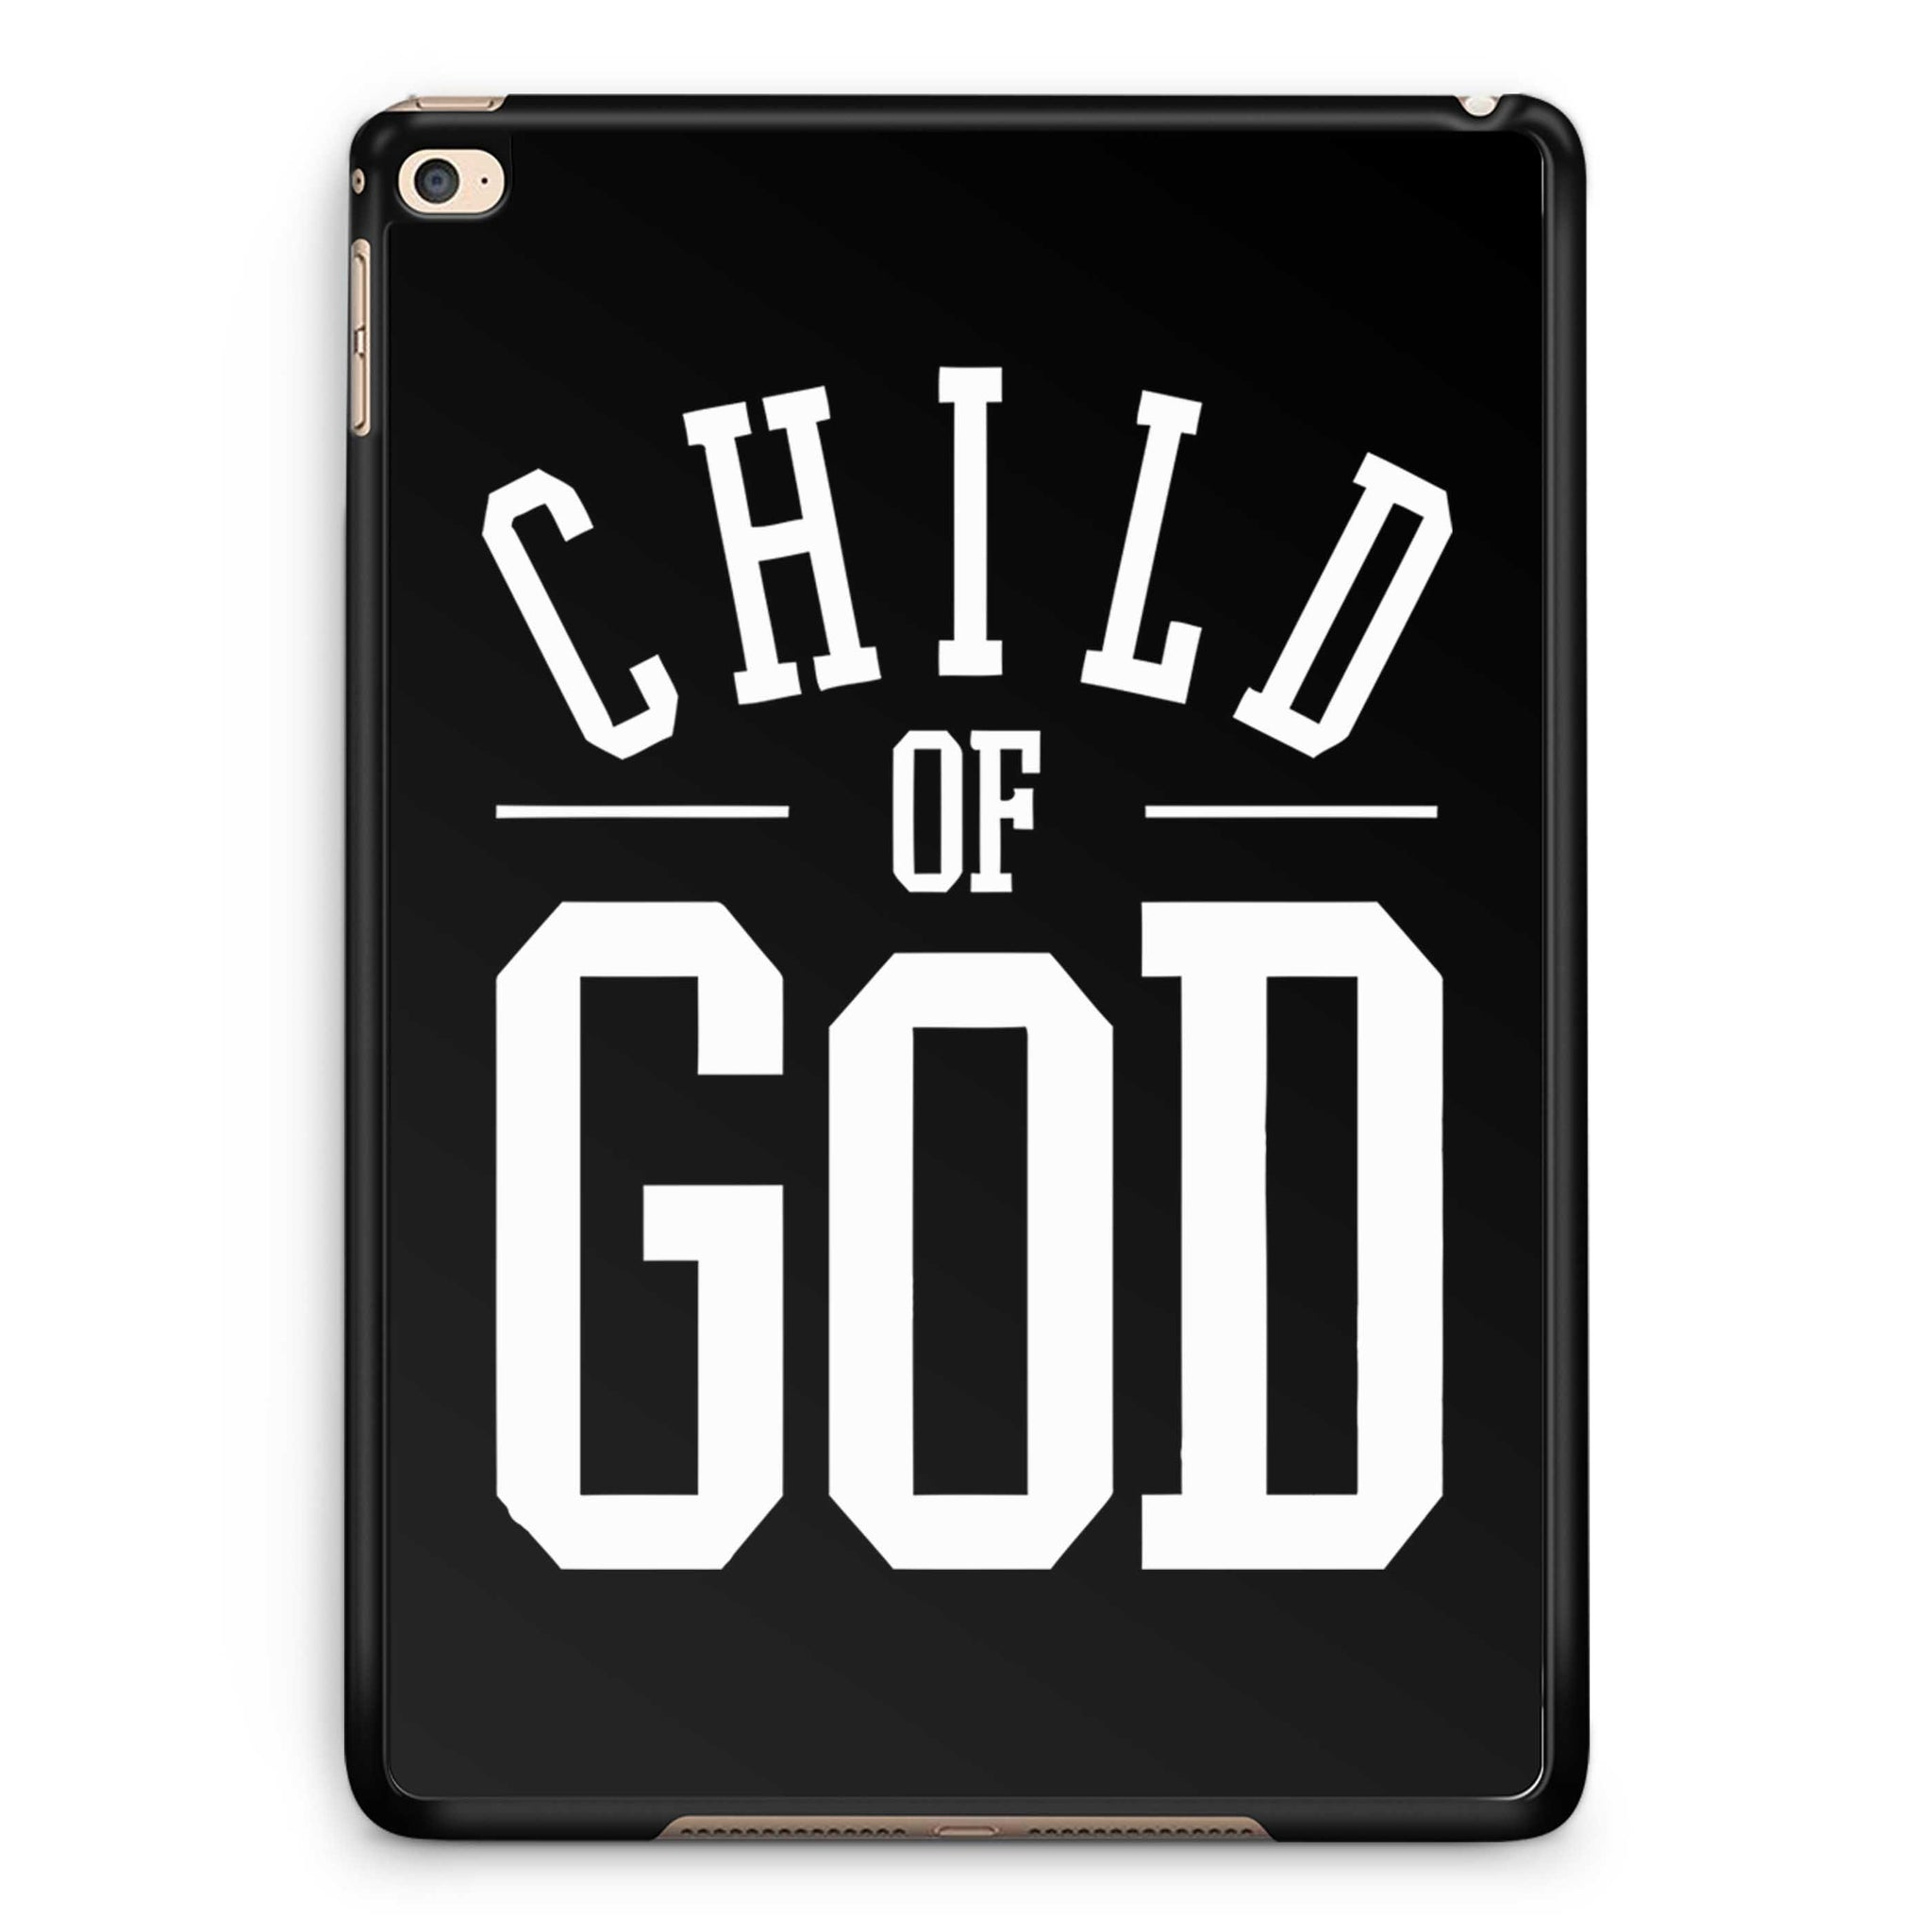 Child Of God iPad Air 2| iPad 2 / 3 / 4 | iPad Mini / Mini 2 Case